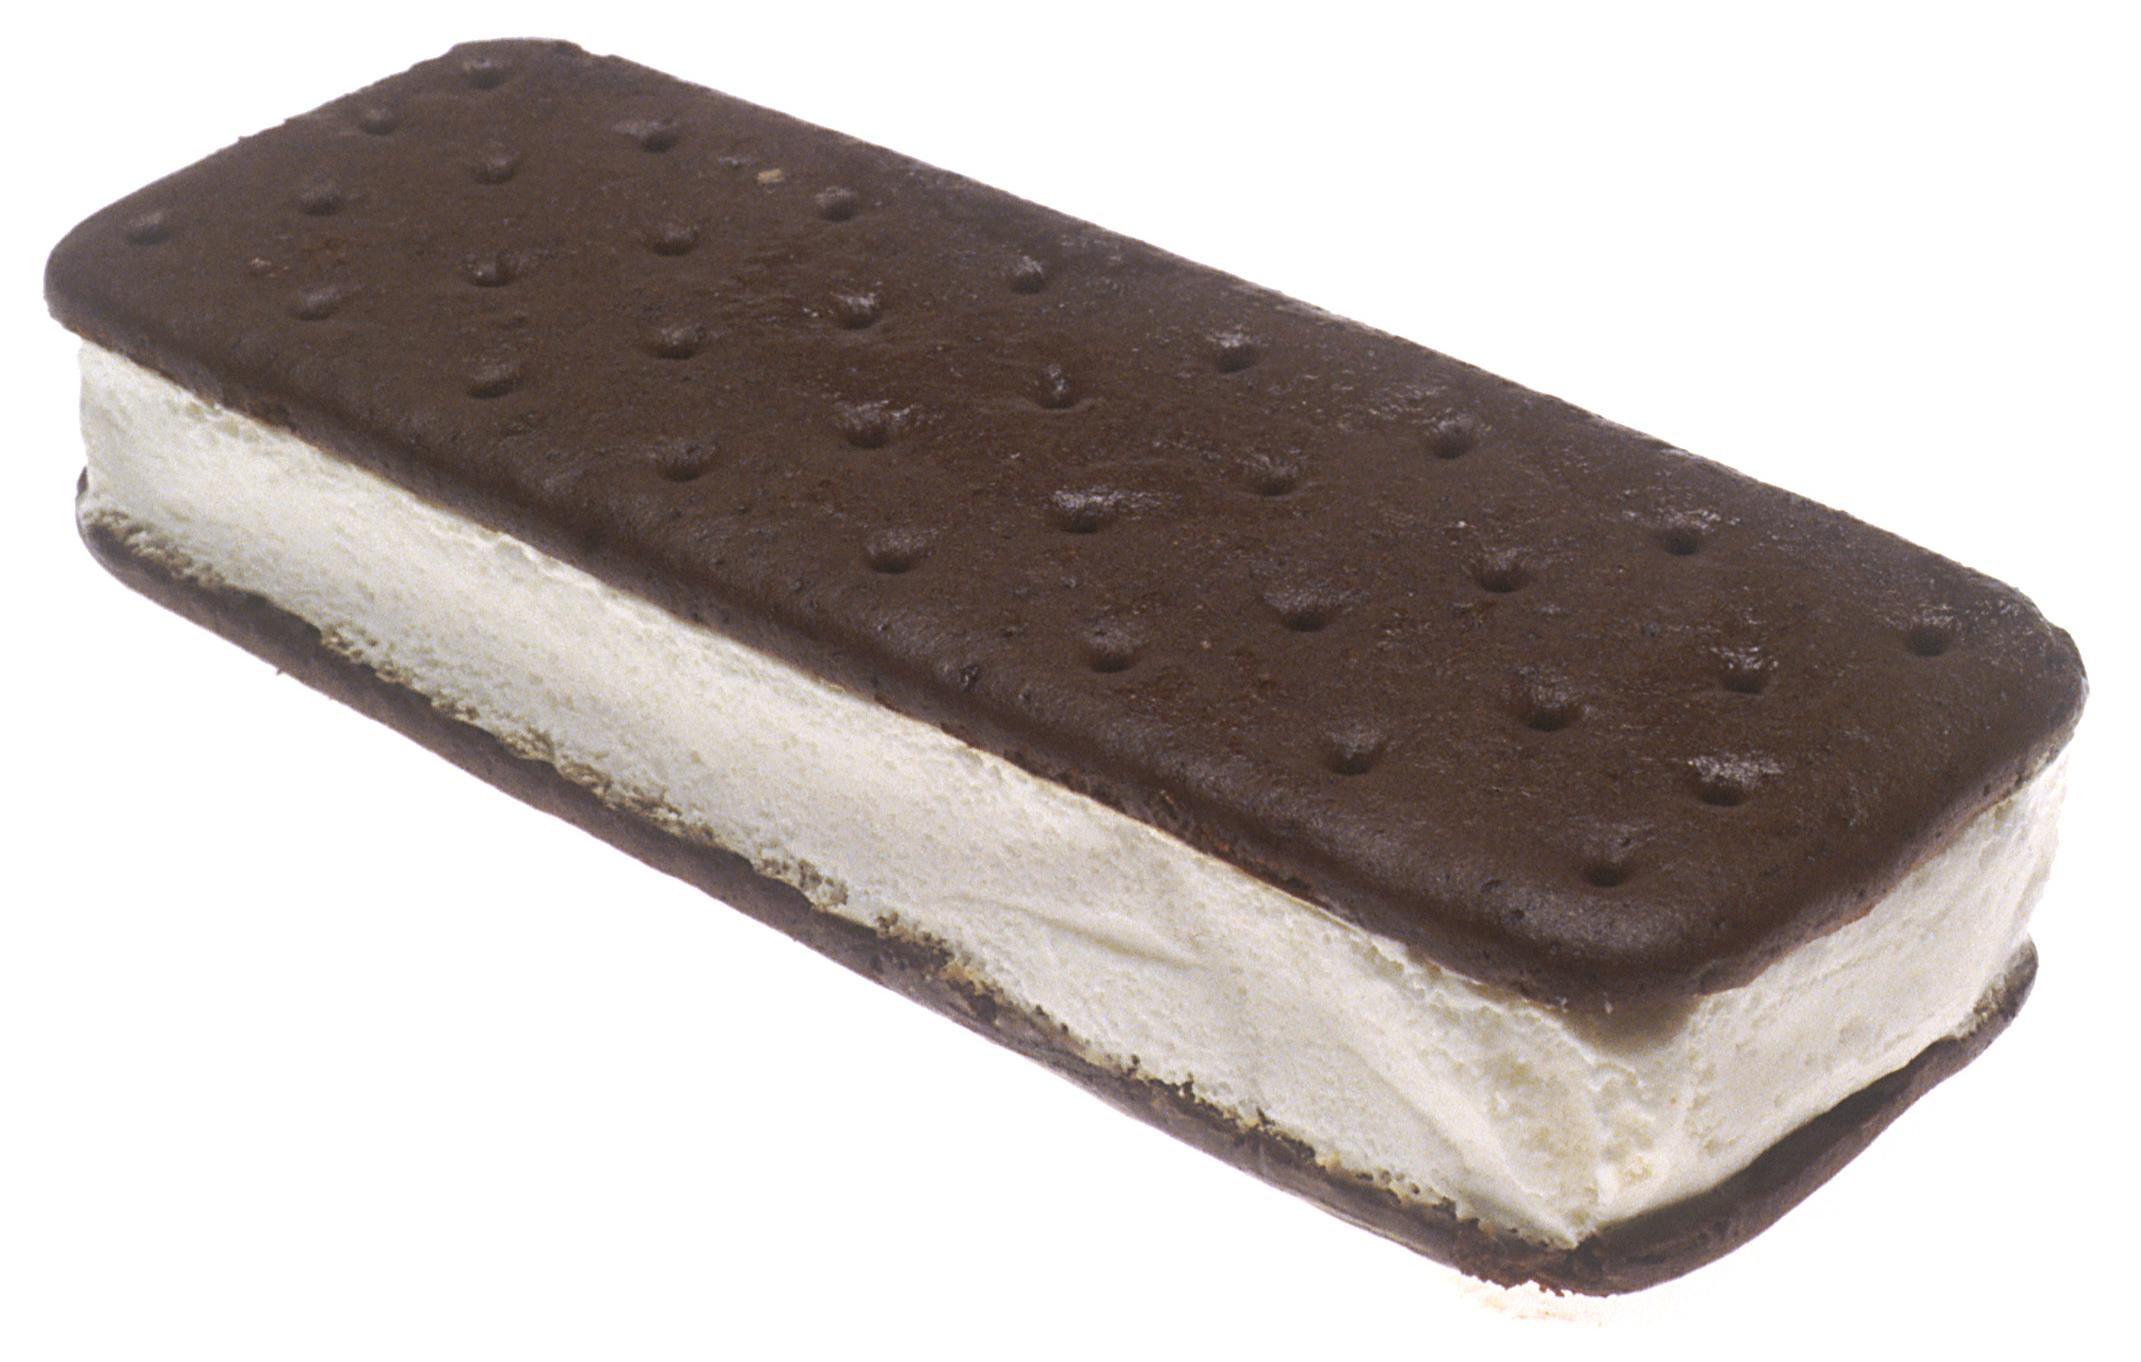 Image Result For Ice Cream Sandwich